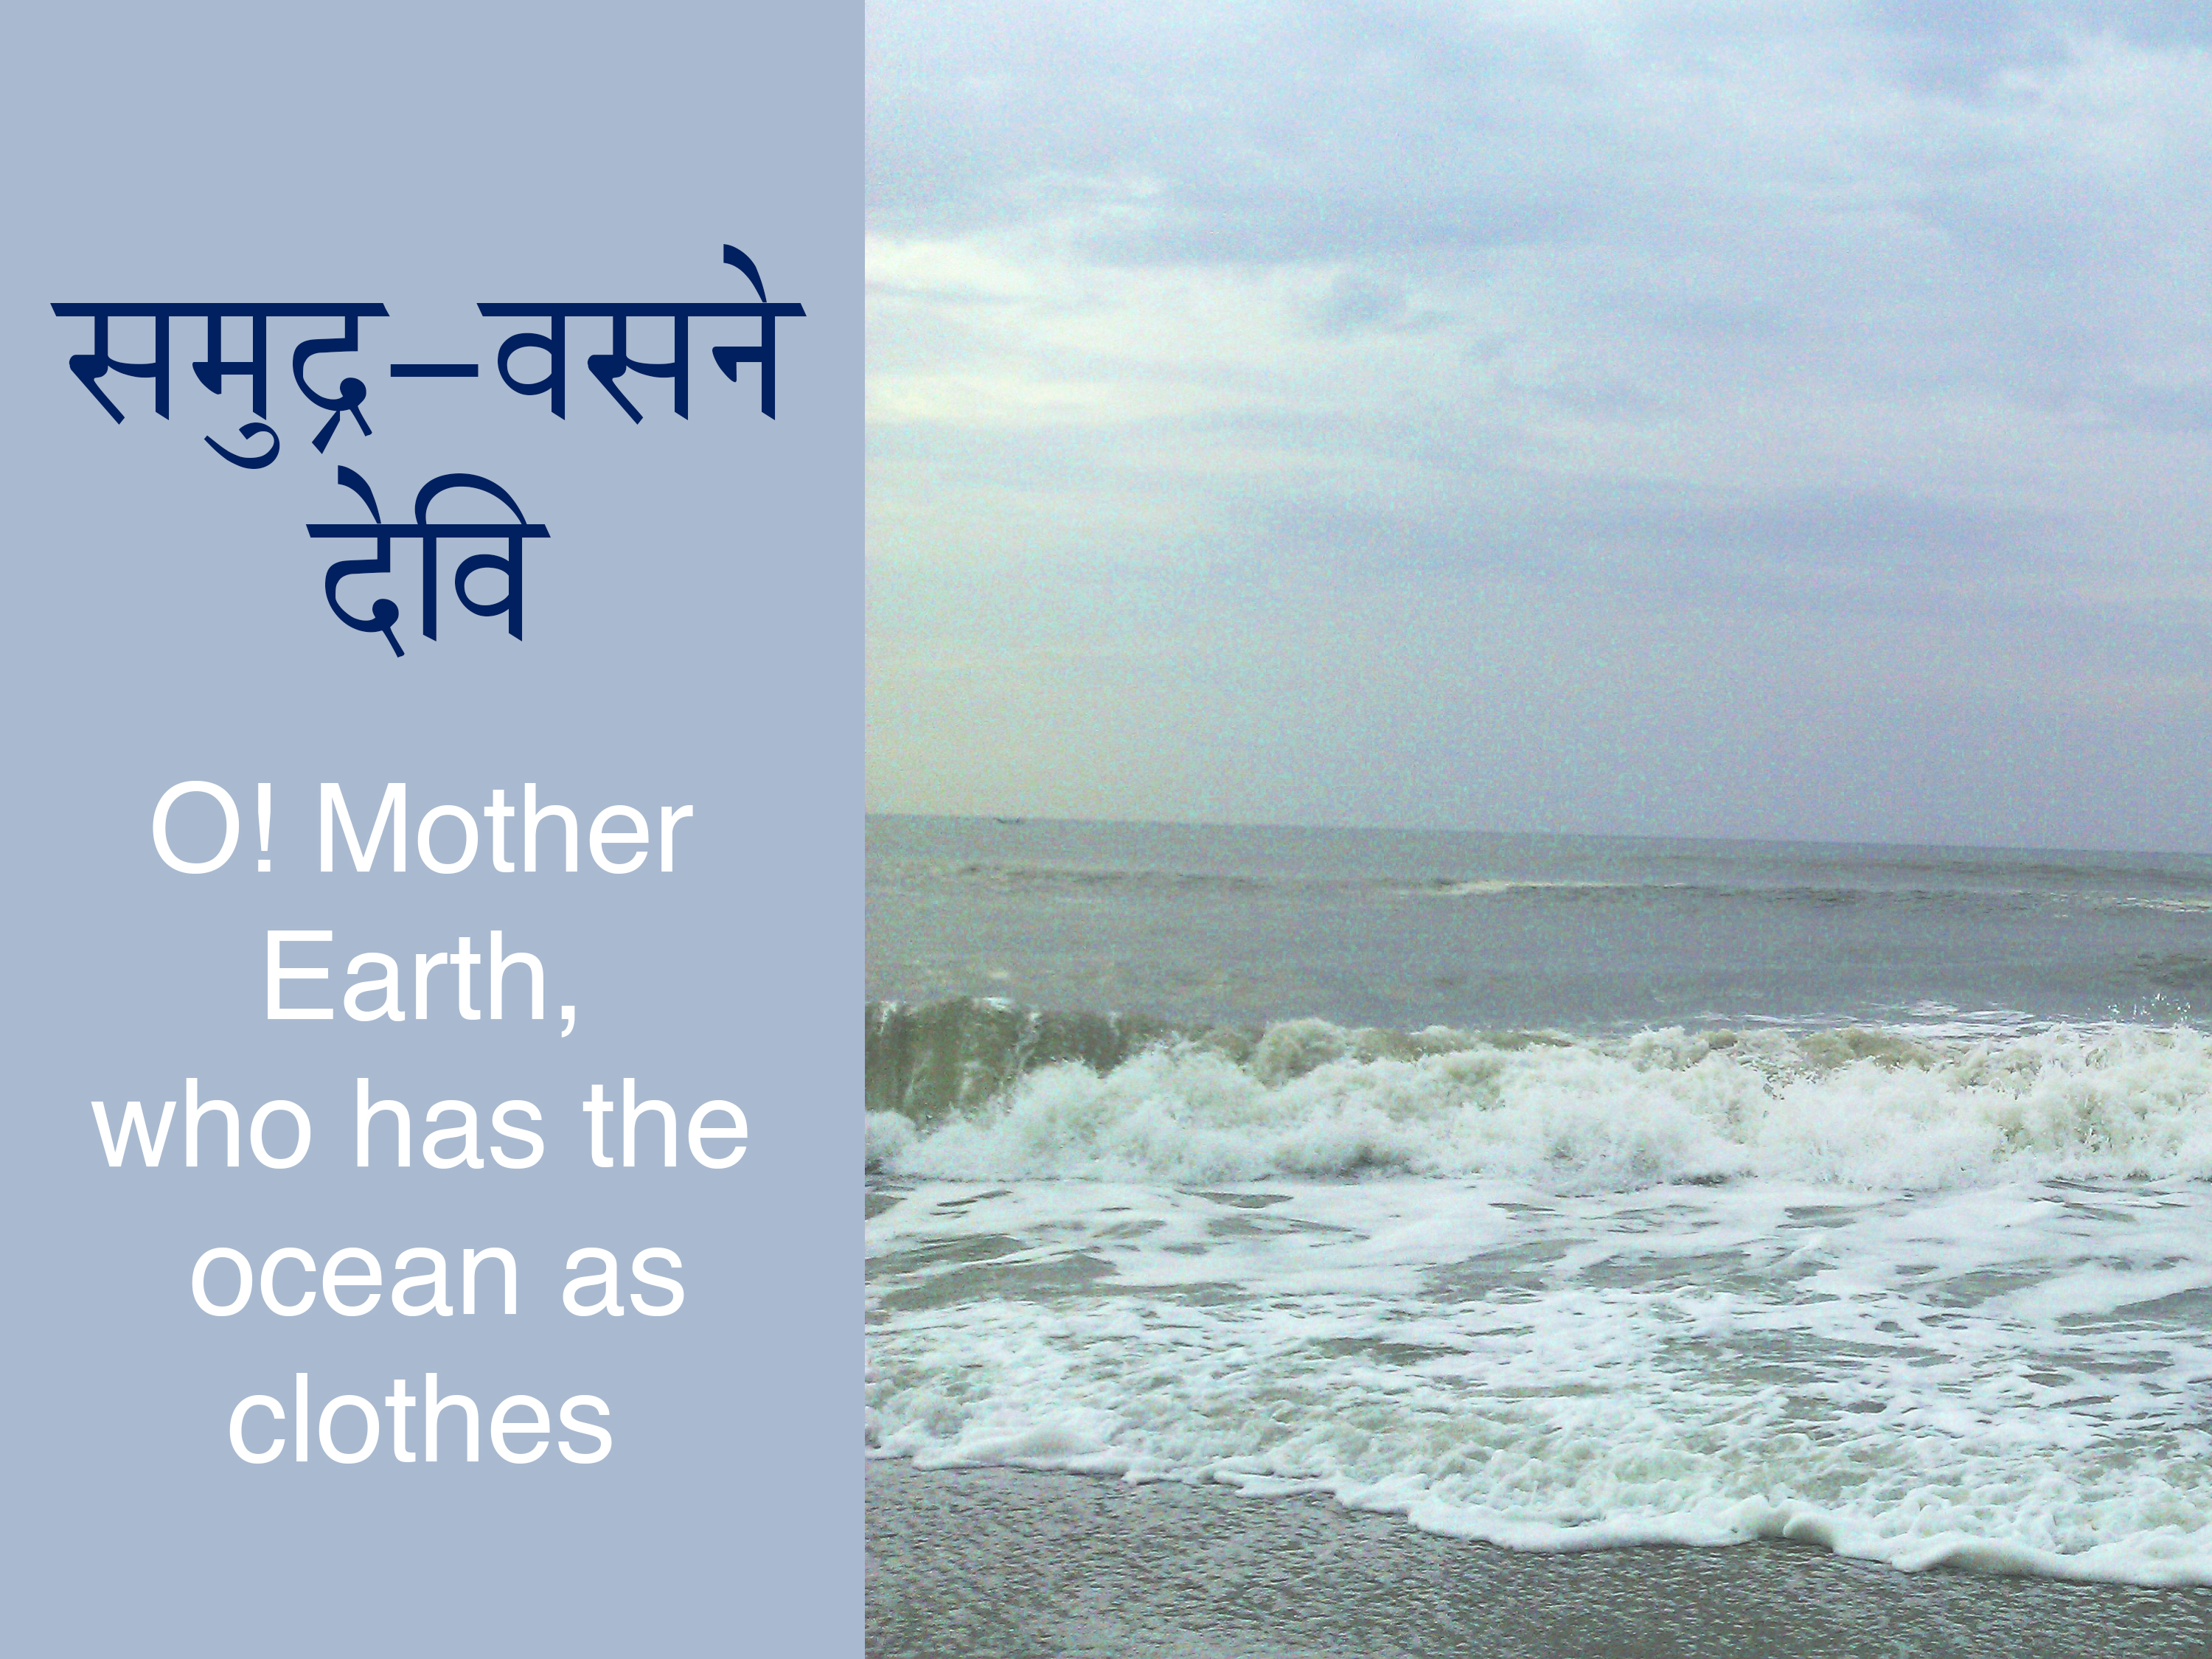 nature in sanskrit Chapter thirteen: nature, the enjoyer and consciousness bg 131-2 — arjuna said: o my dear kṛṣṇa, i wish to know about prakṛti [nature], puruṣa.